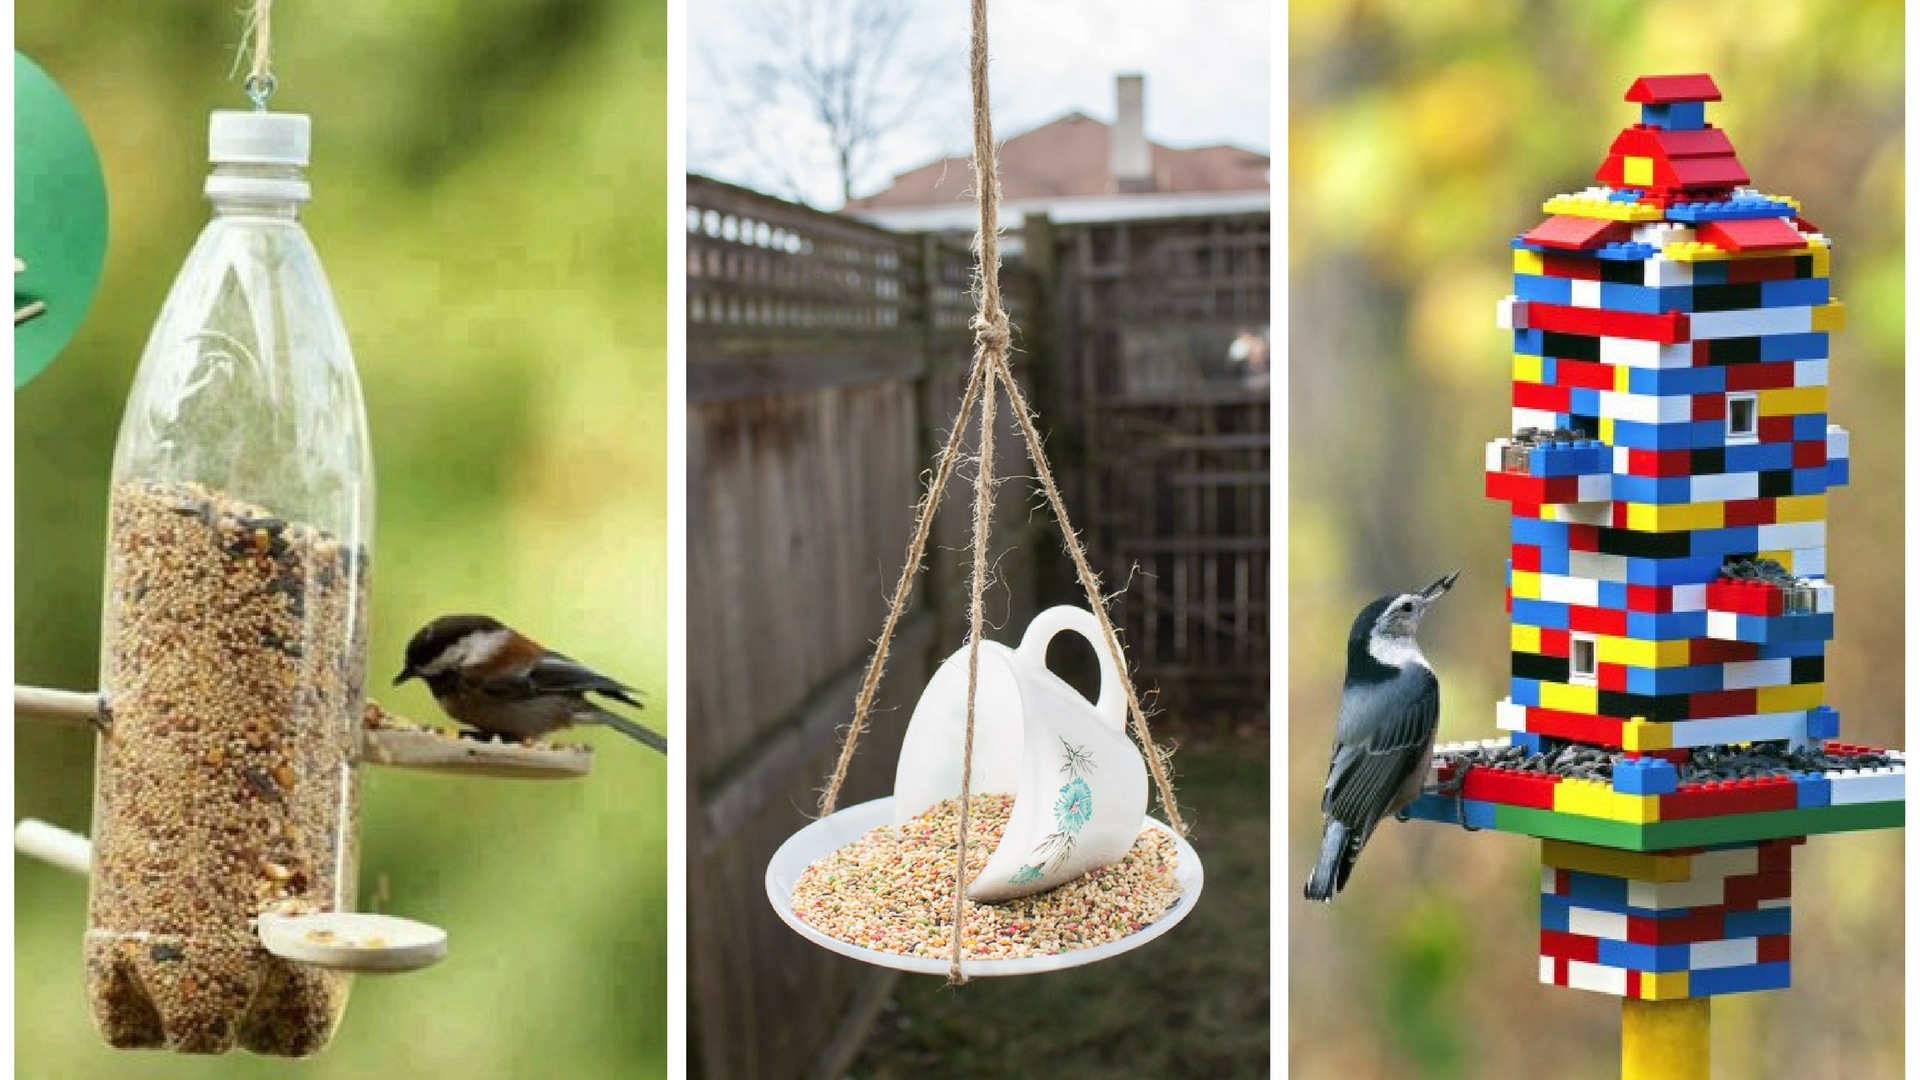 10 simple ways to make a diy bird feeder the handy mano. Black Bedroom Furniture Sets. Home Design Ideas